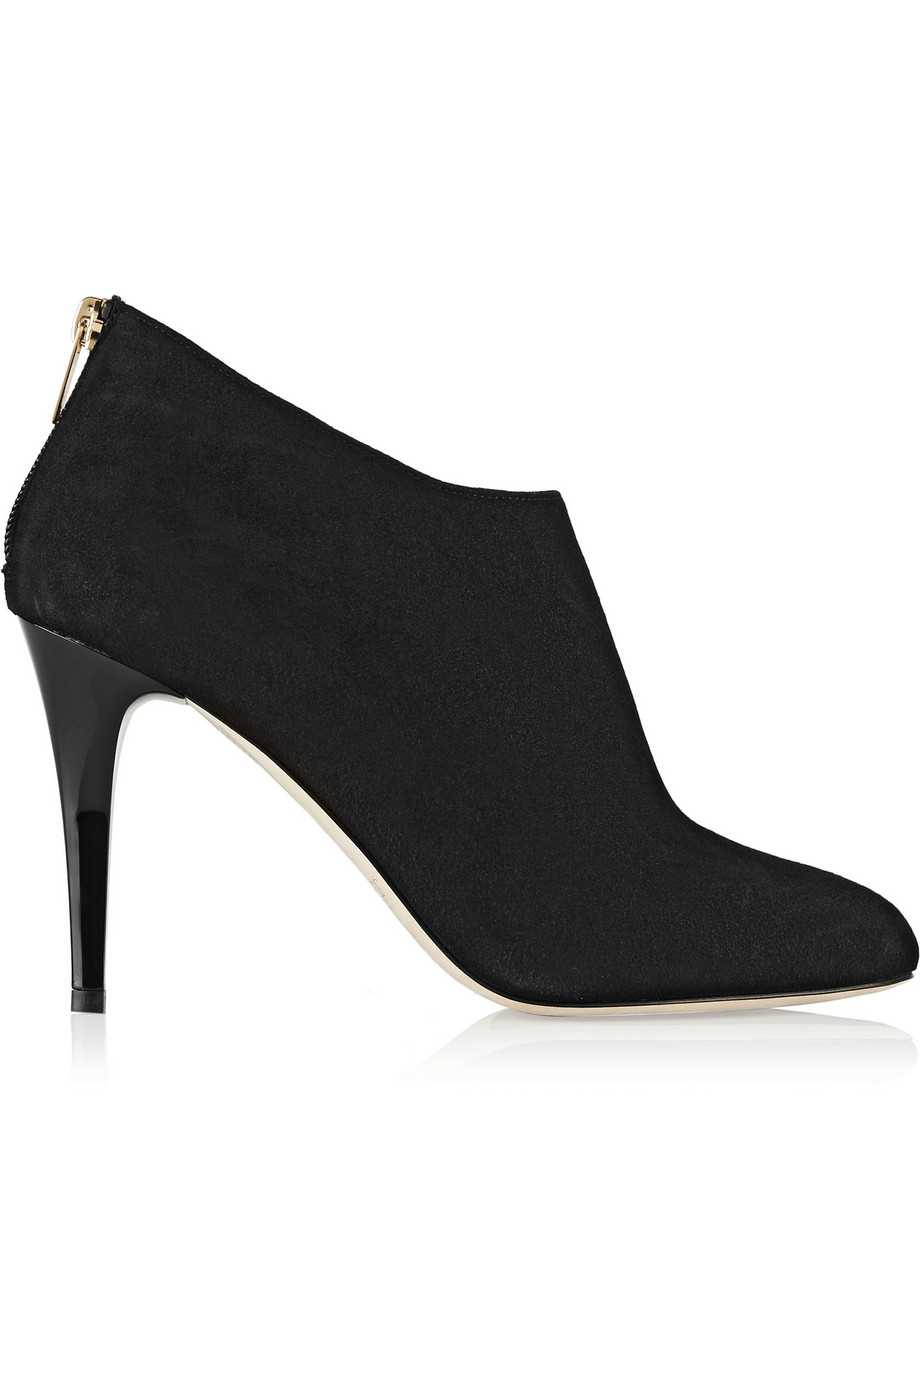 Jimmy Choo - Bottines (625 €)